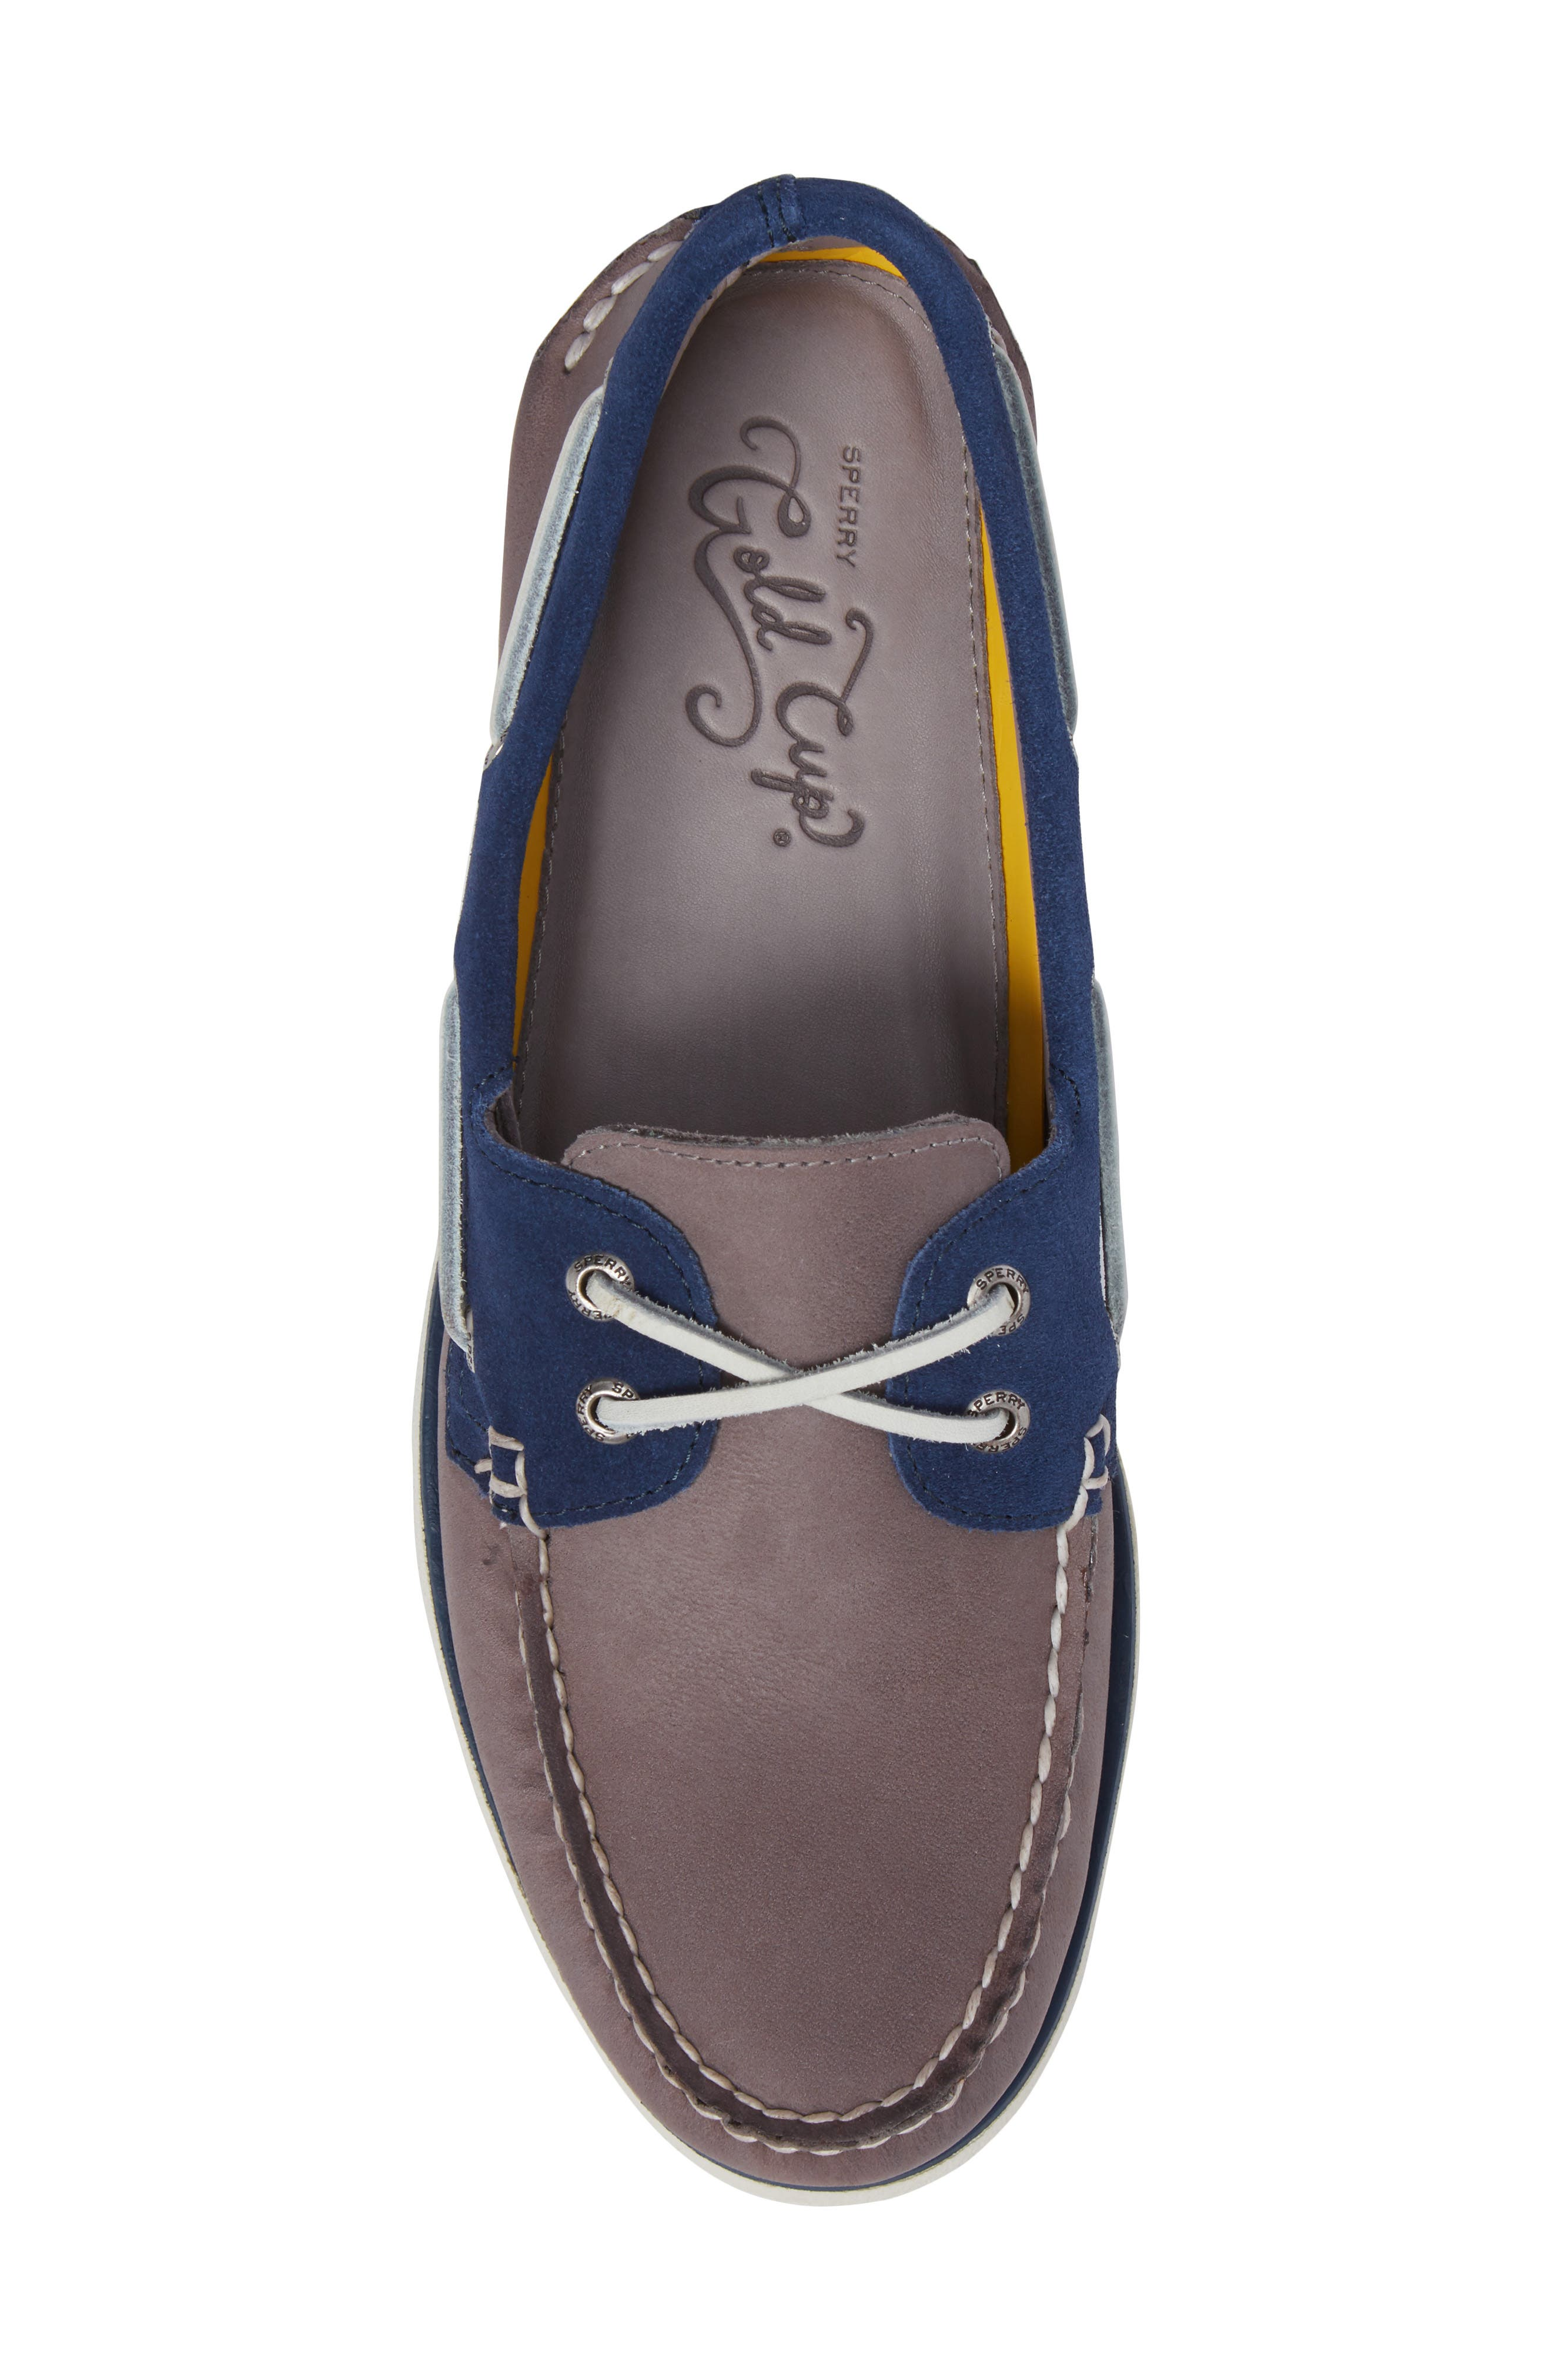 Gold Cup Authentic Original Boat Shoe,                             Alternate thumbnail 5, color,                             Grey/ Blue Leather